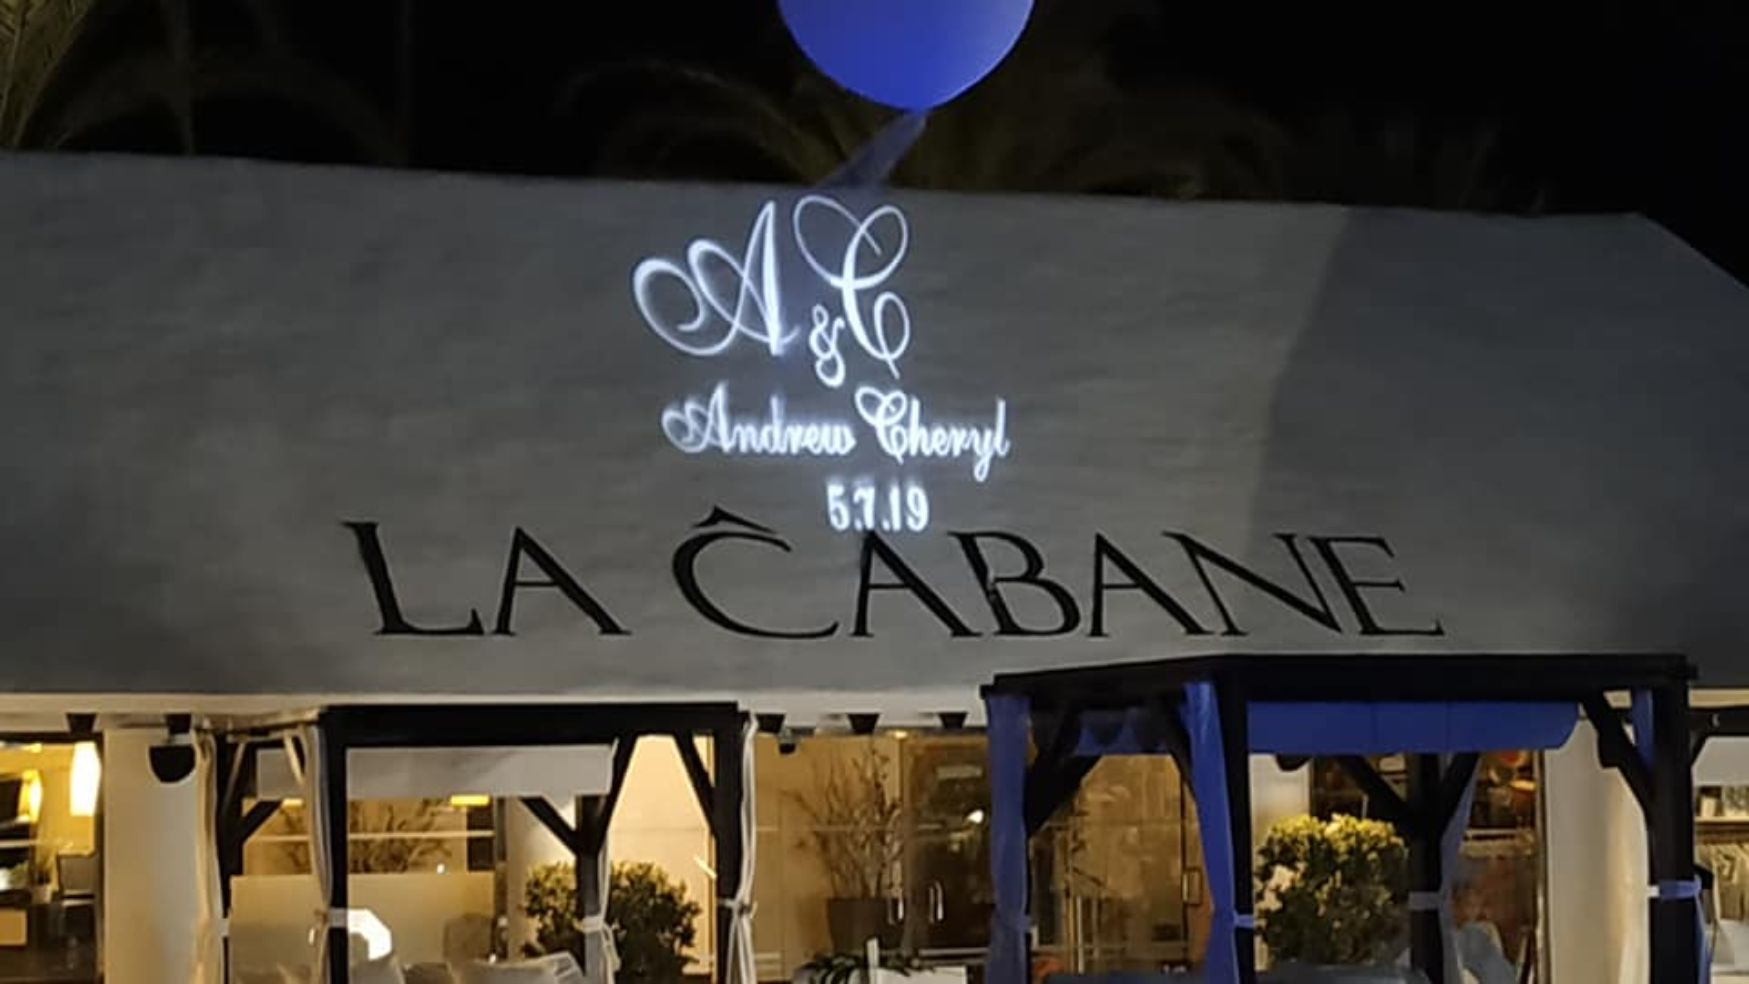 Projected lettering Marbella